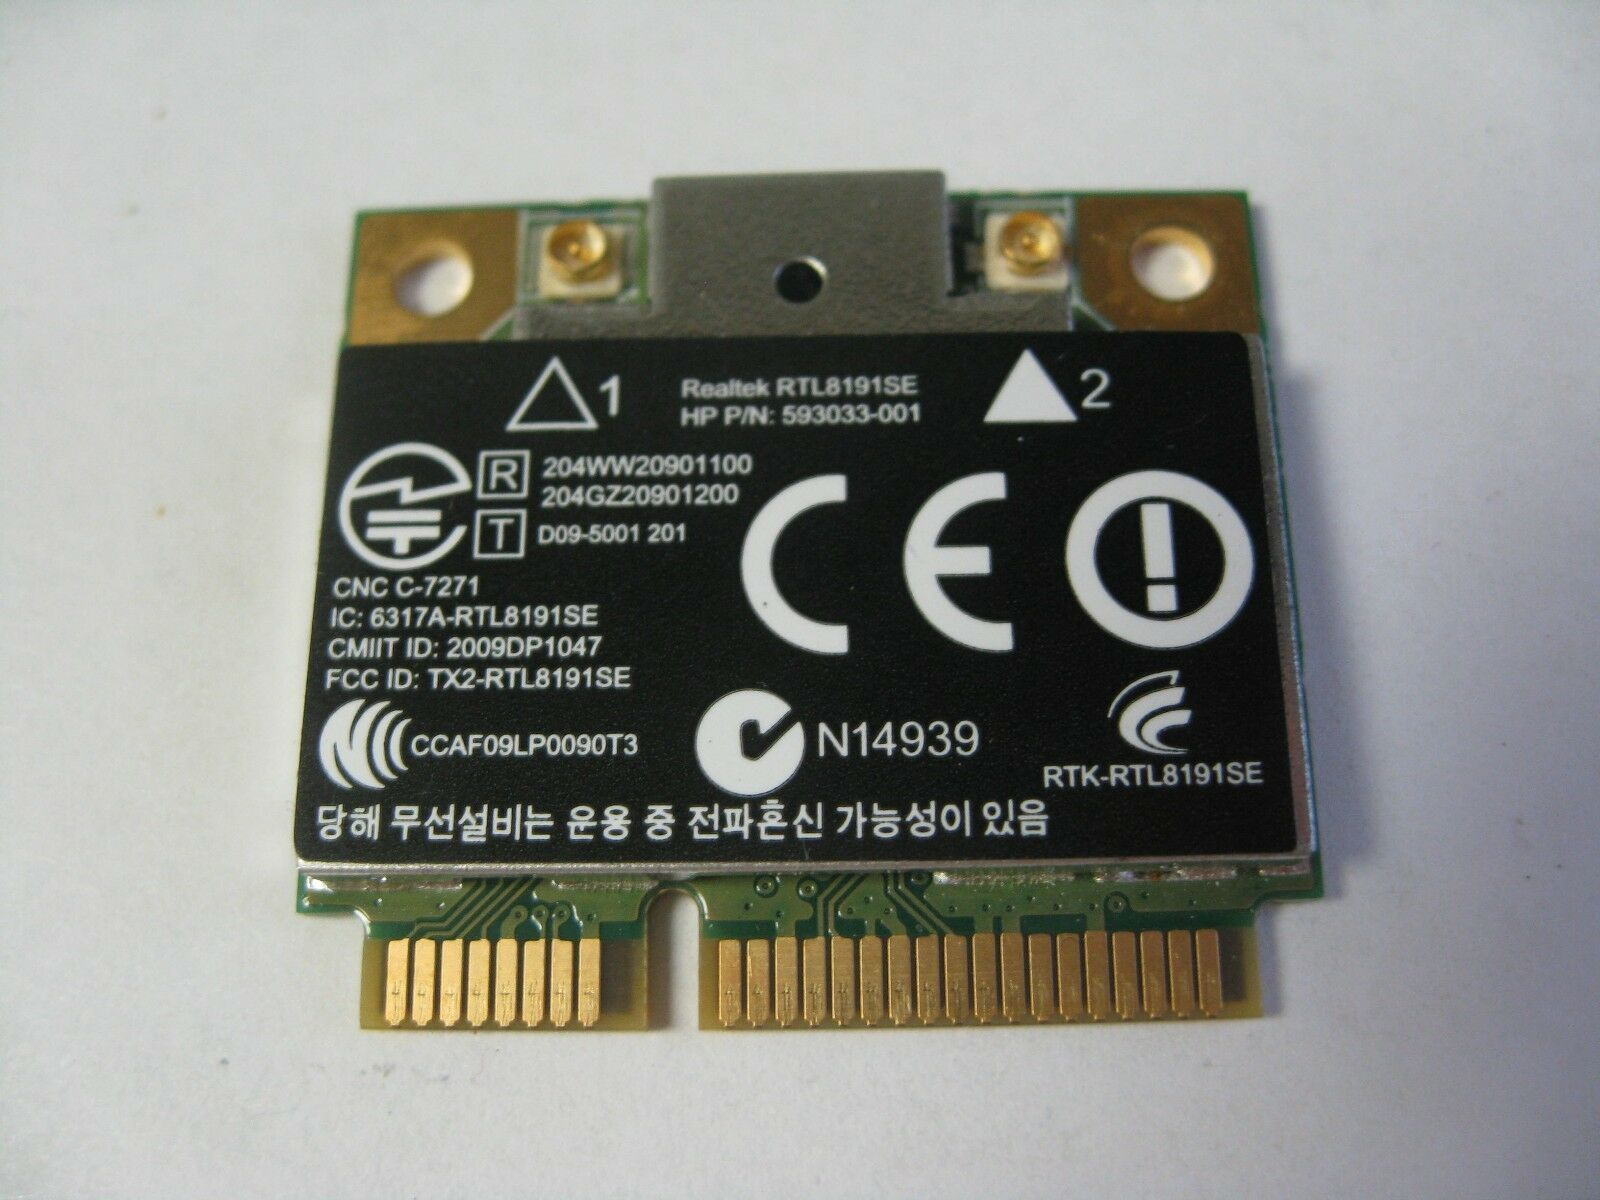 USB 2.0 Wireless WiFi Lan Card for HP-Compaq Presario CQ5315ES